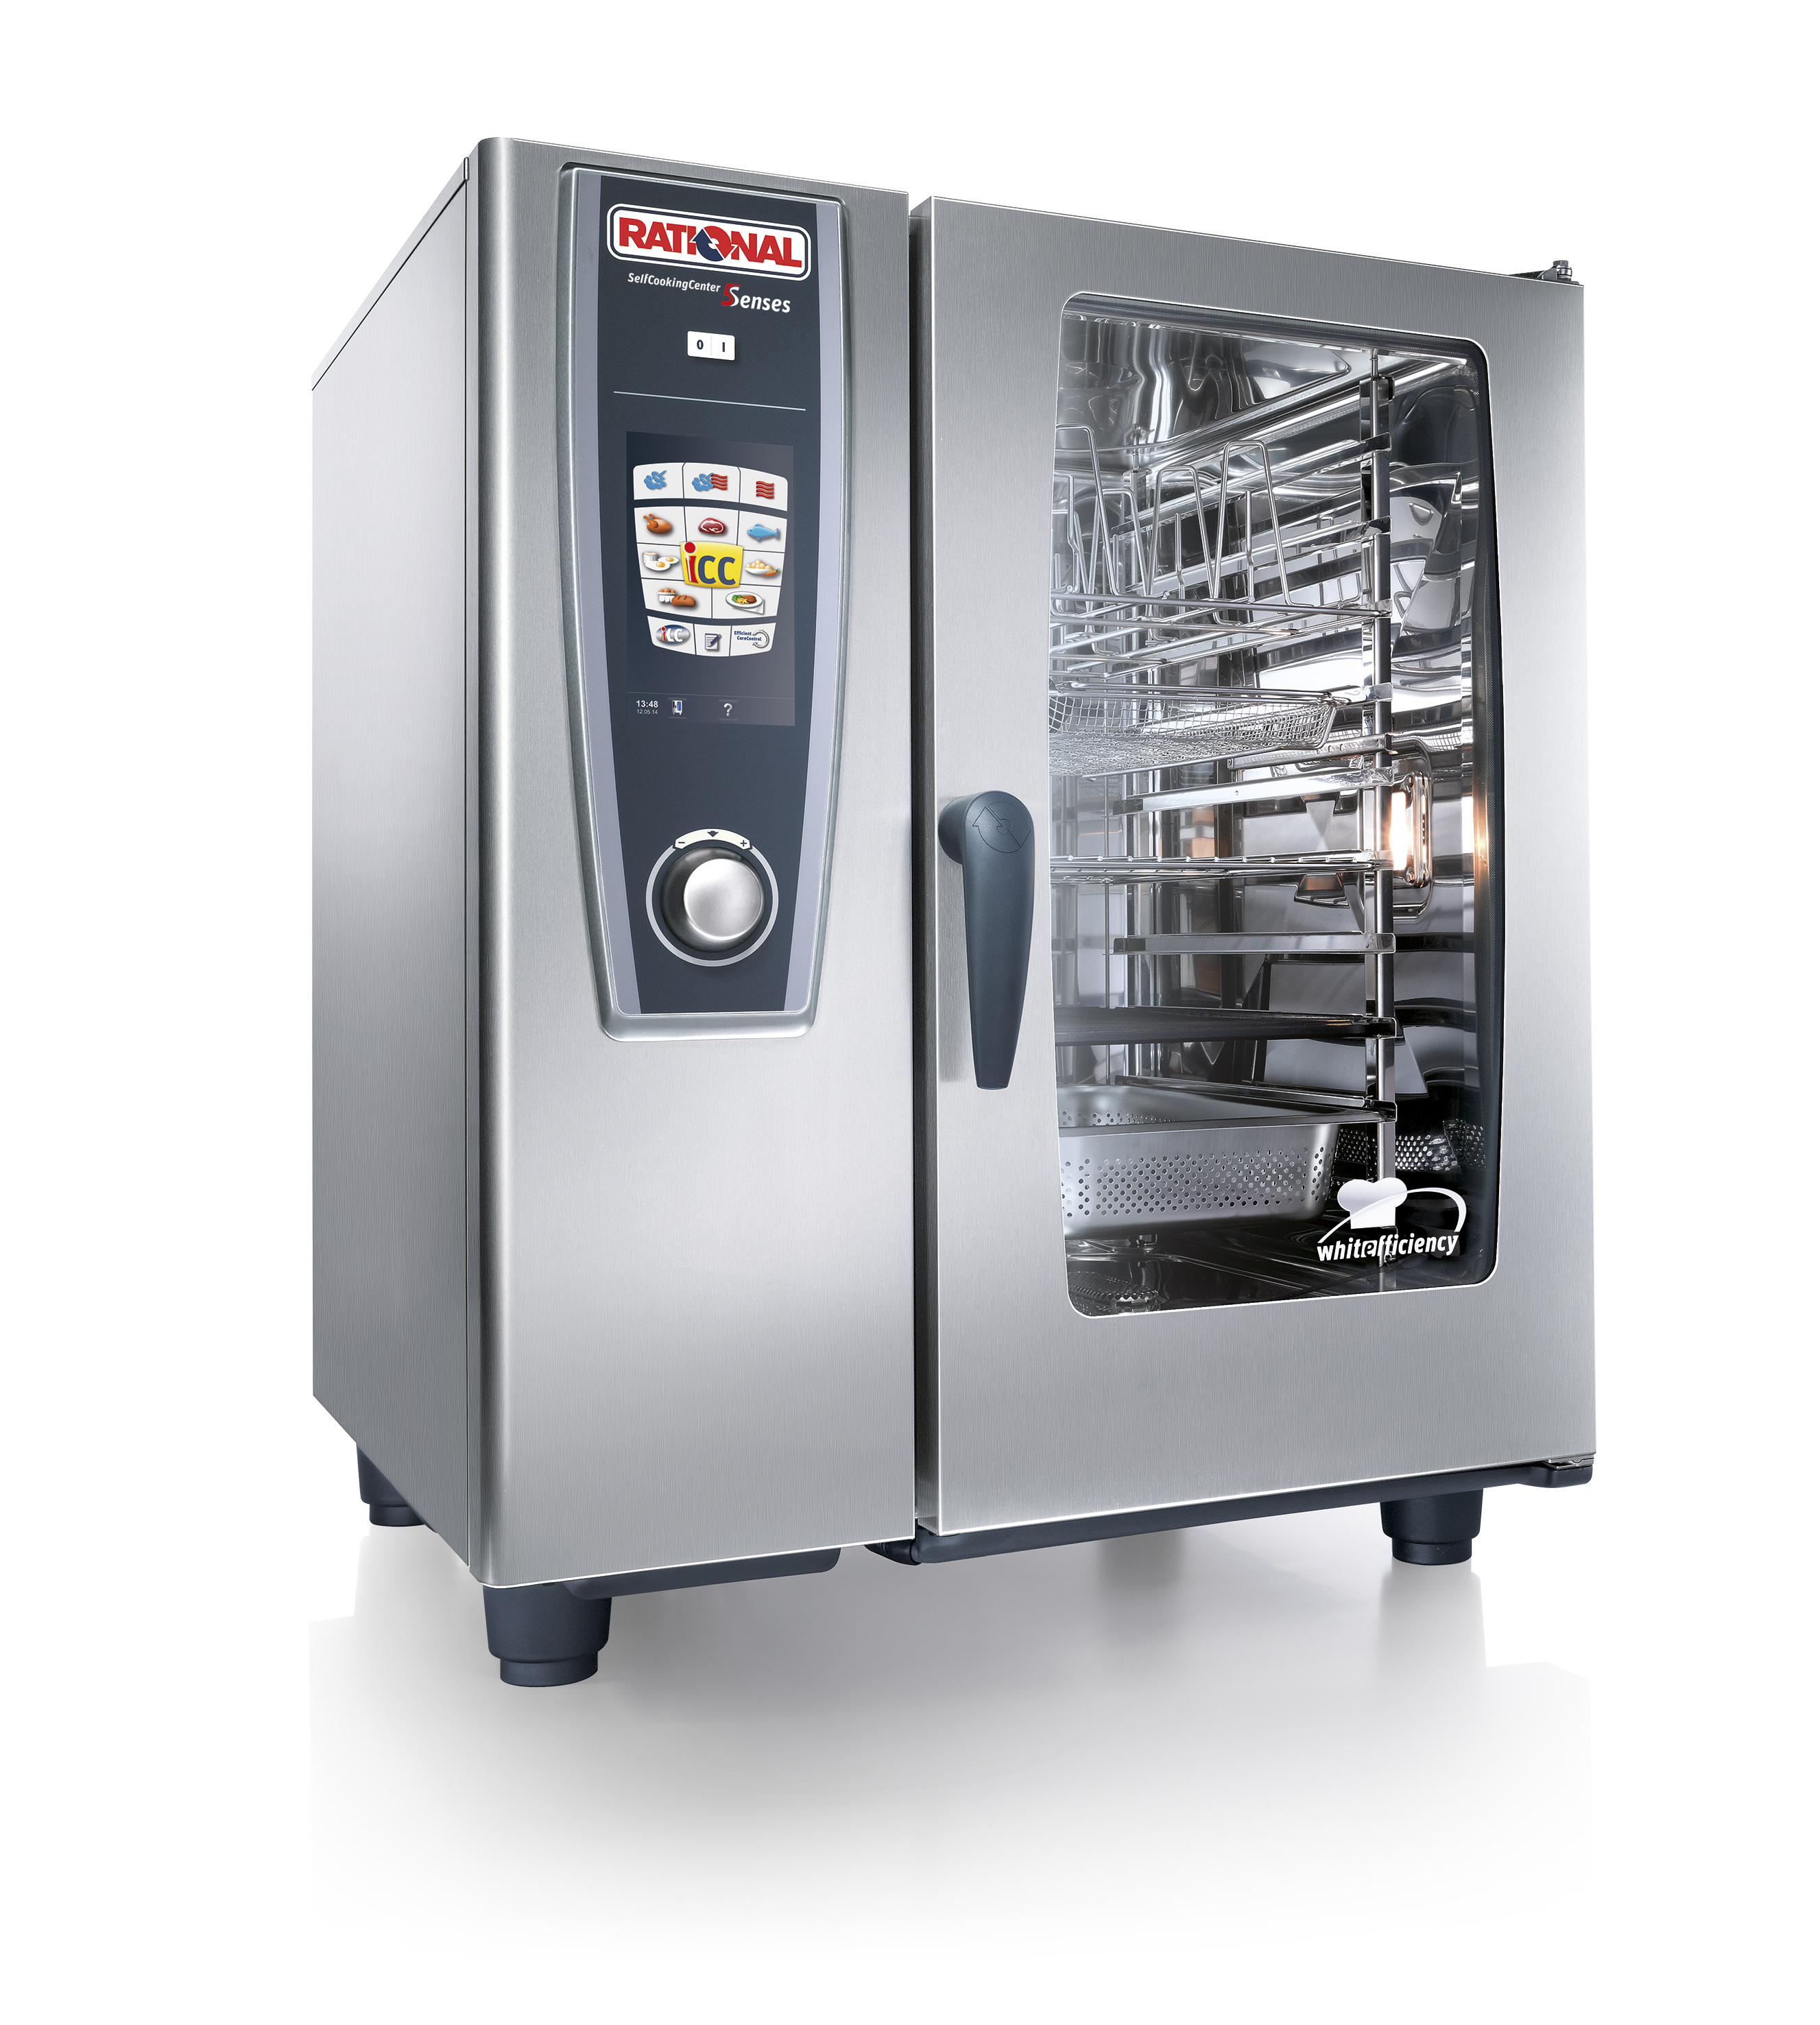 Rational launches new combi steamer  Rational